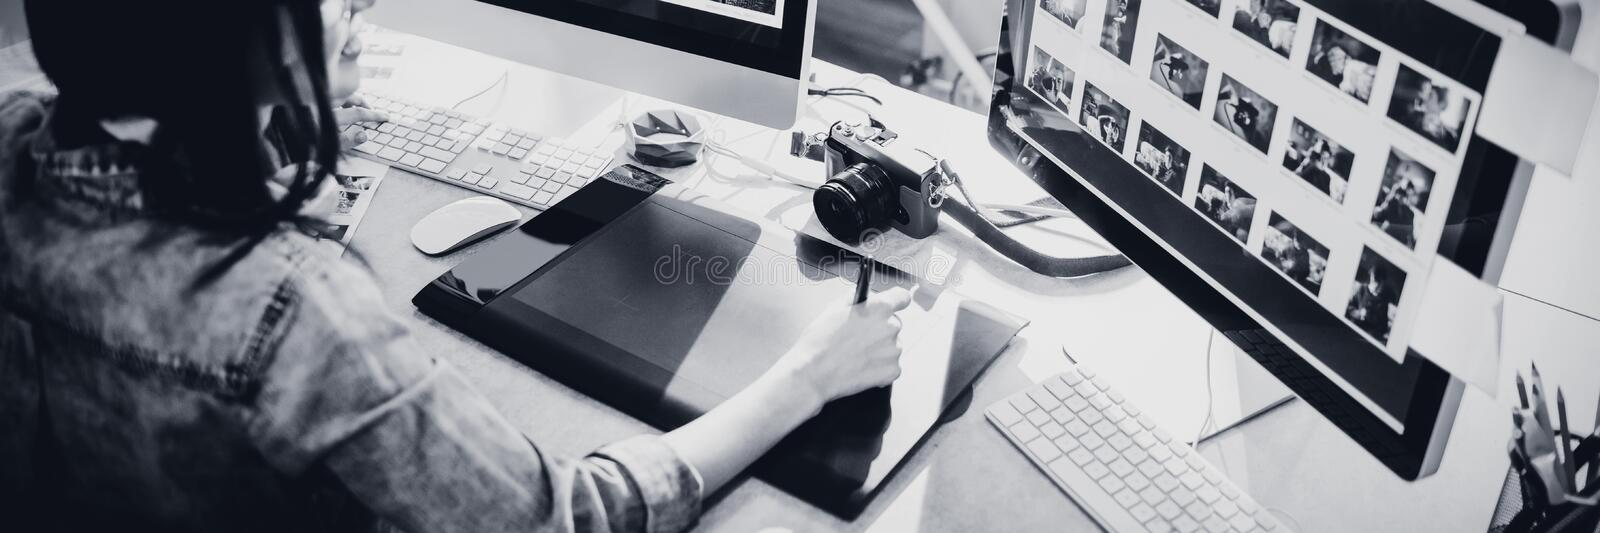 High angle view of graphic designer using graphics tablet. High angle view of female graphic designer using tablet while working on computer at office royalty free stock image